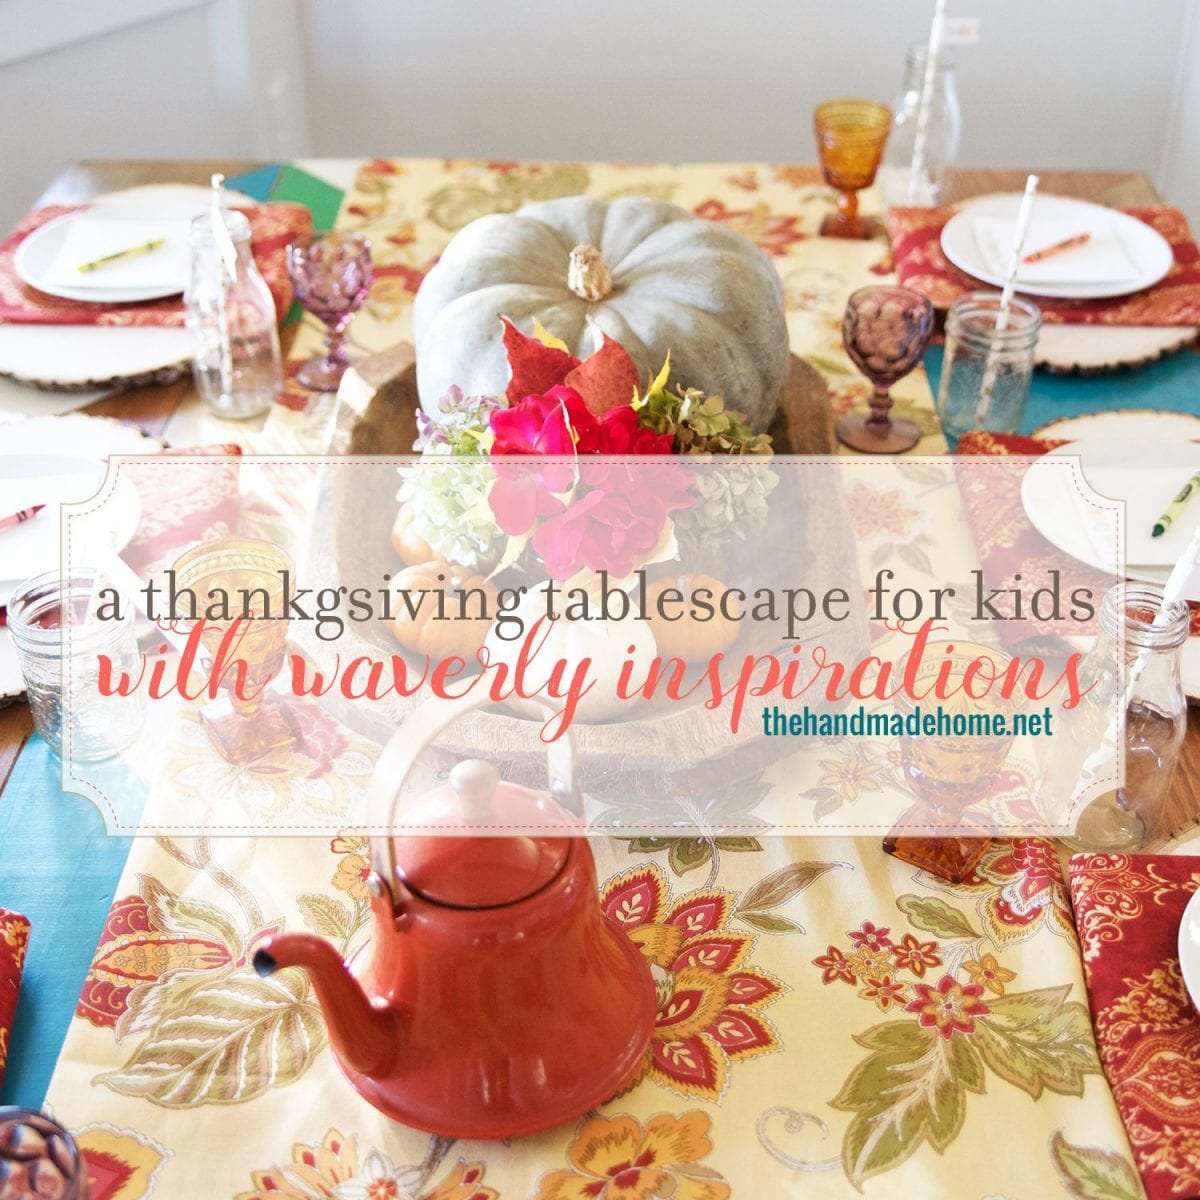 a_thanksgiving_tablesacpe_with_waverly